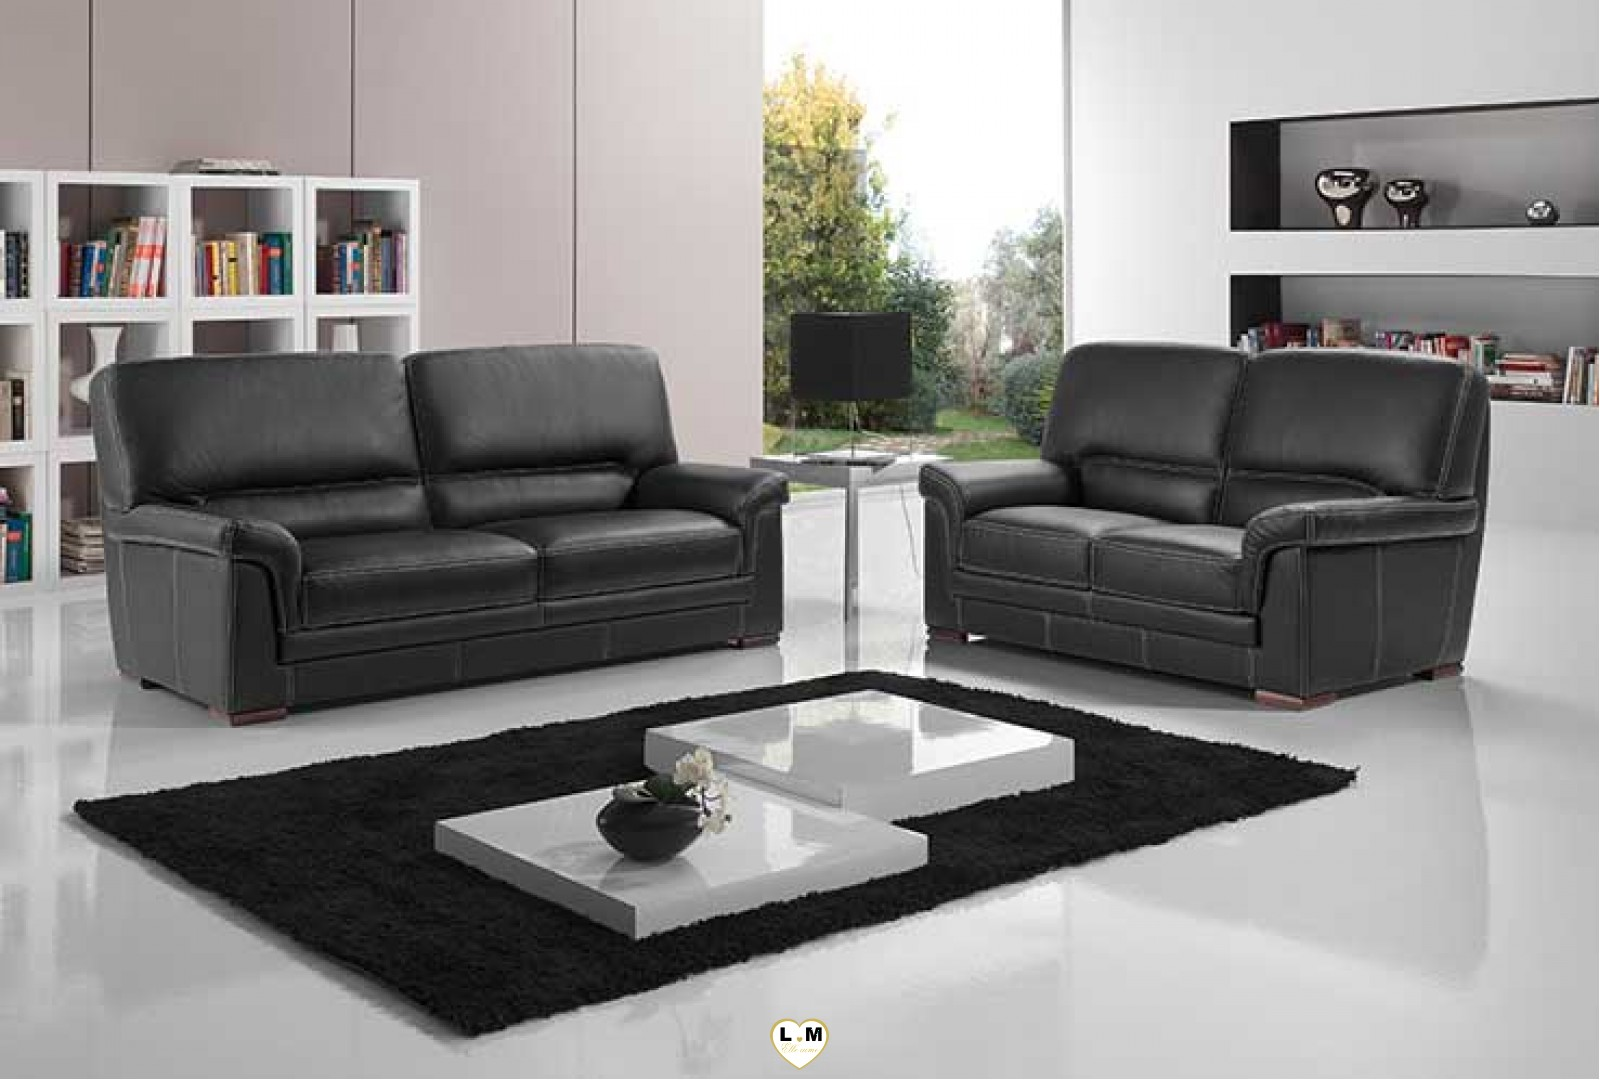 anita ensemble salon cuir lignemeuble com. Black Bedroom Furniture Sets. Home Design Ideas